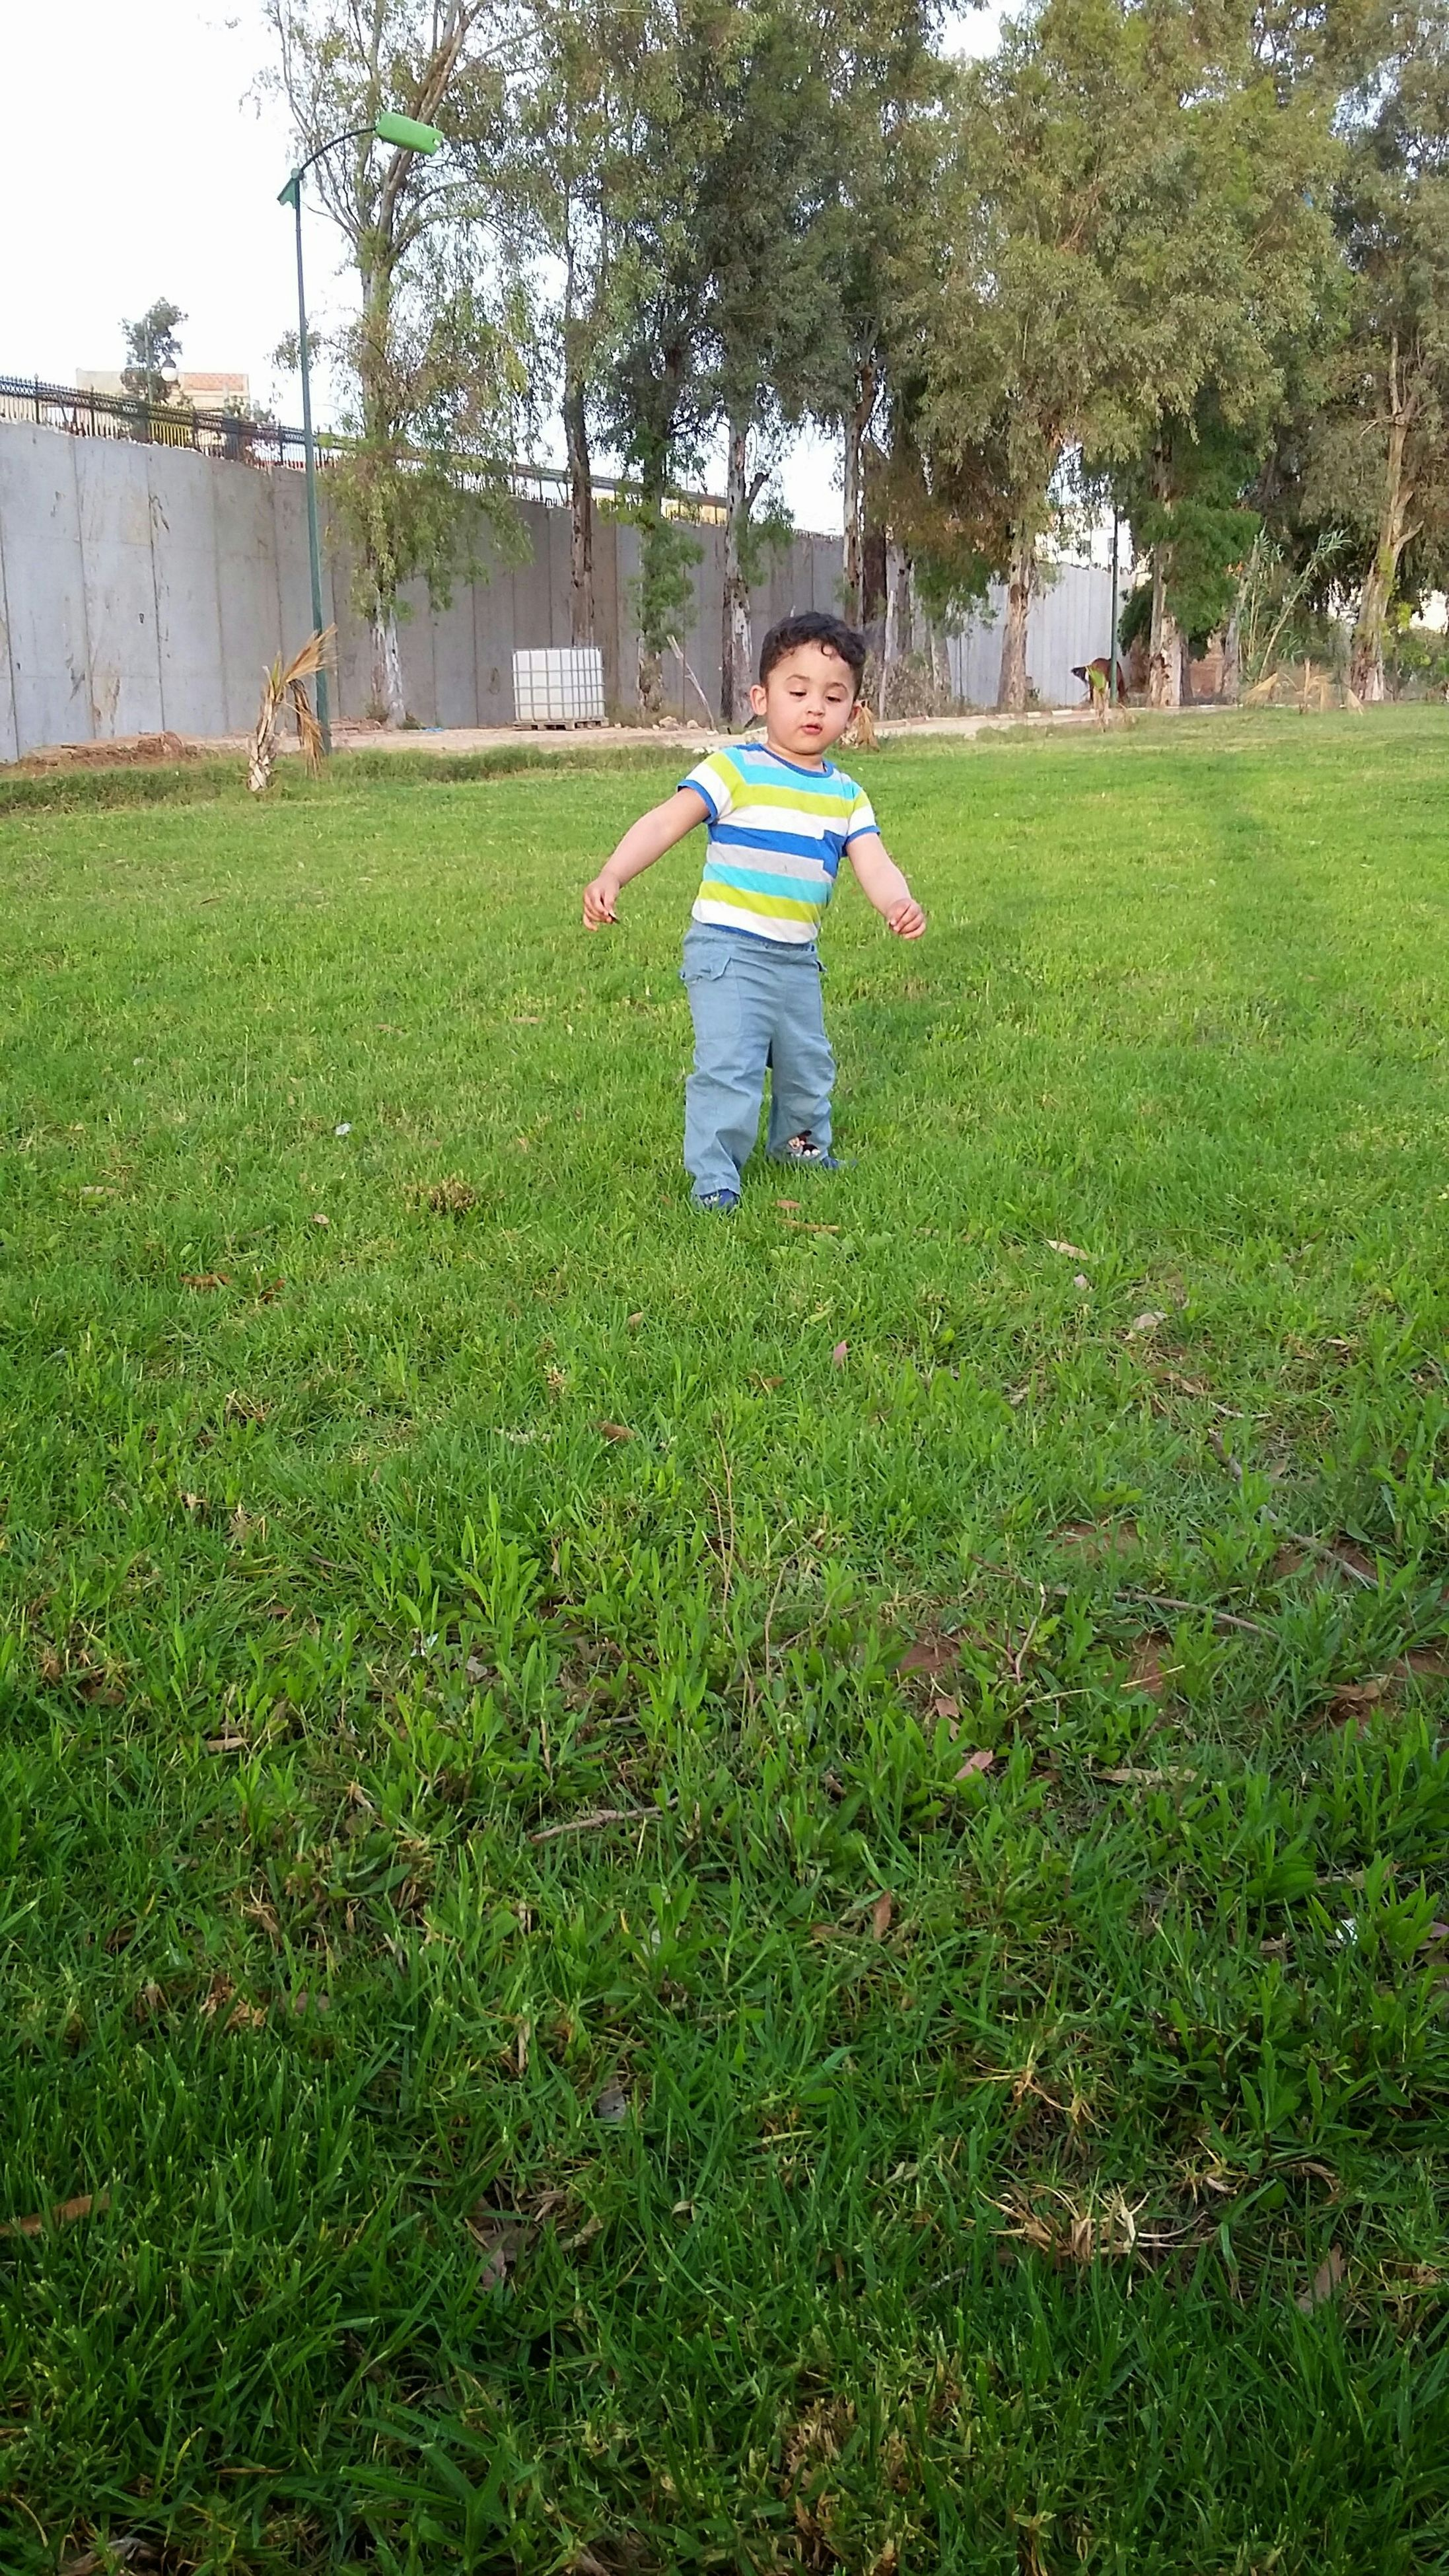 grass, field, green color, grassy, childhood, lifestyles, leisure activity, full length, lawn, casual clothing, growth, person, park - man made space, built structure, tree, boys, day, plant